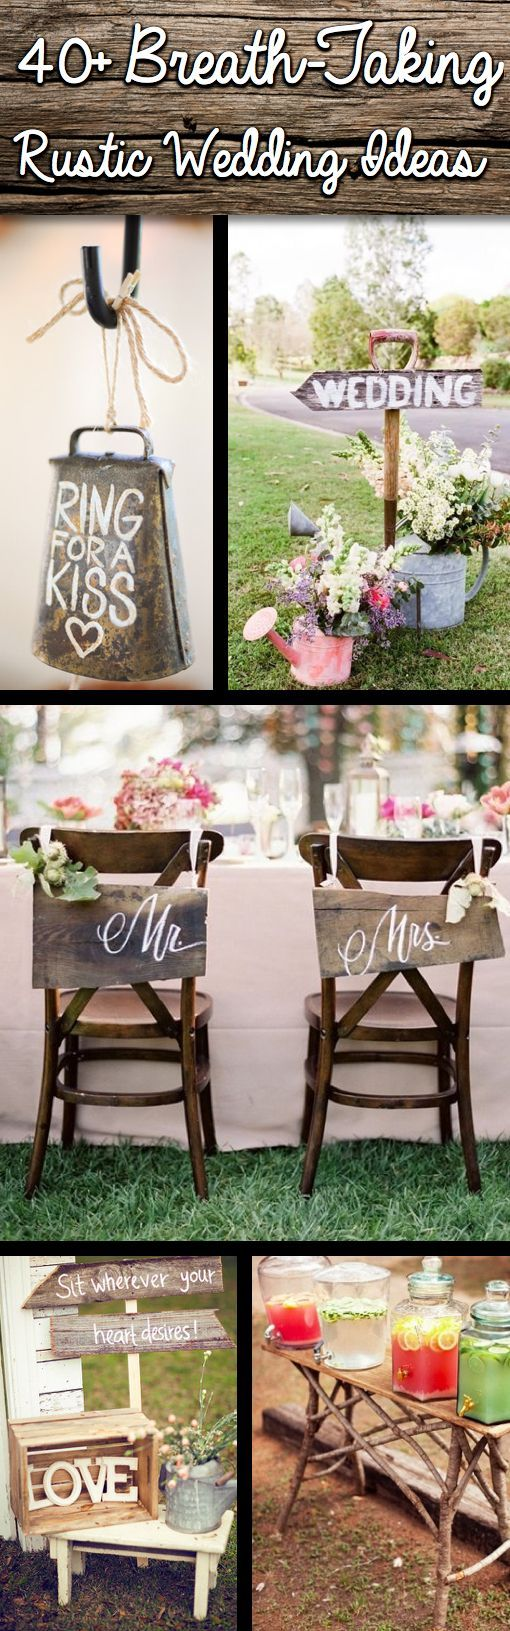 40+ Breath-taking Rustic Wedding I Cutediyprojects